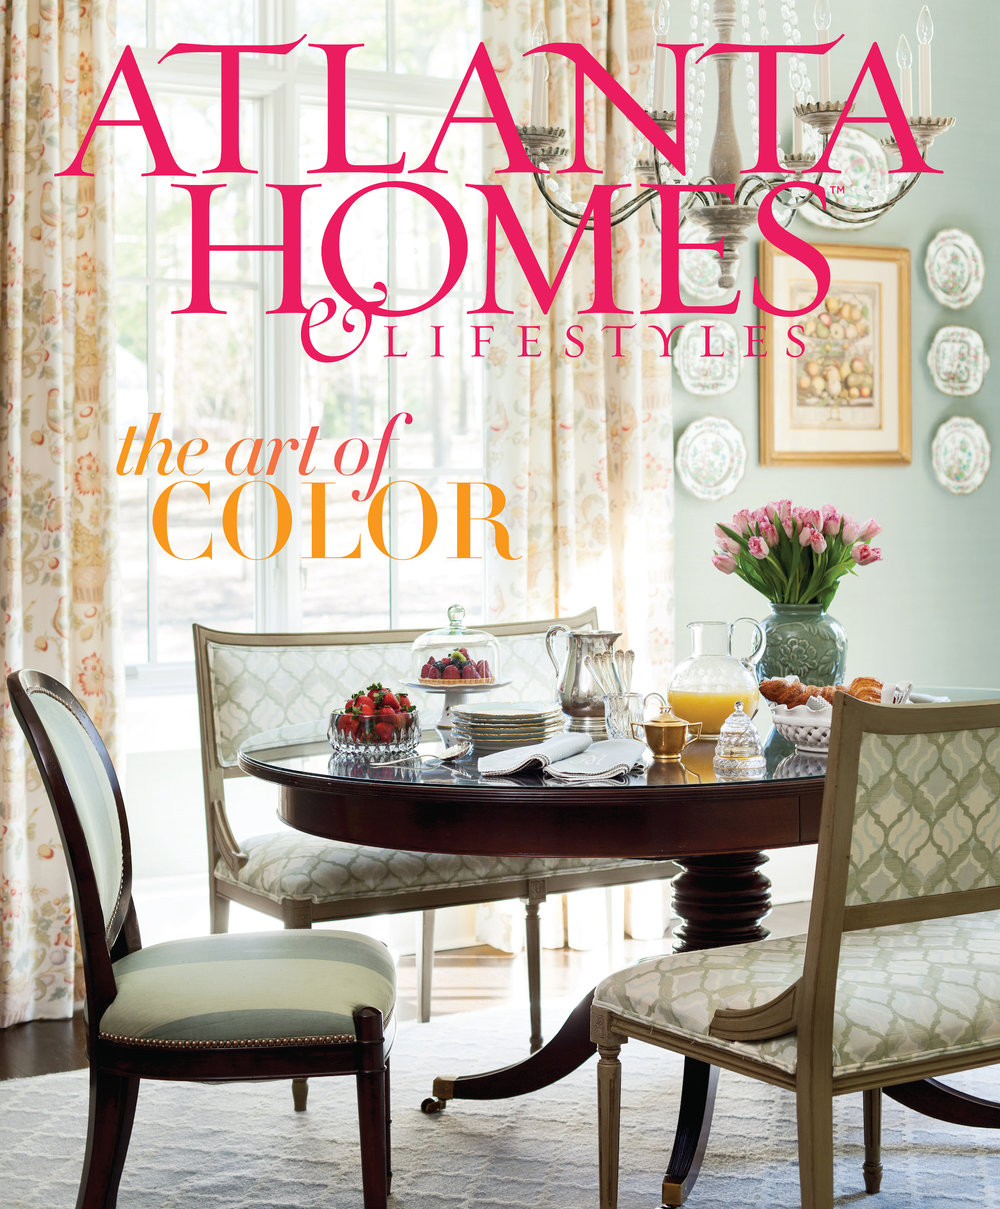 Atlanta Home_June 2016 cover.jpg